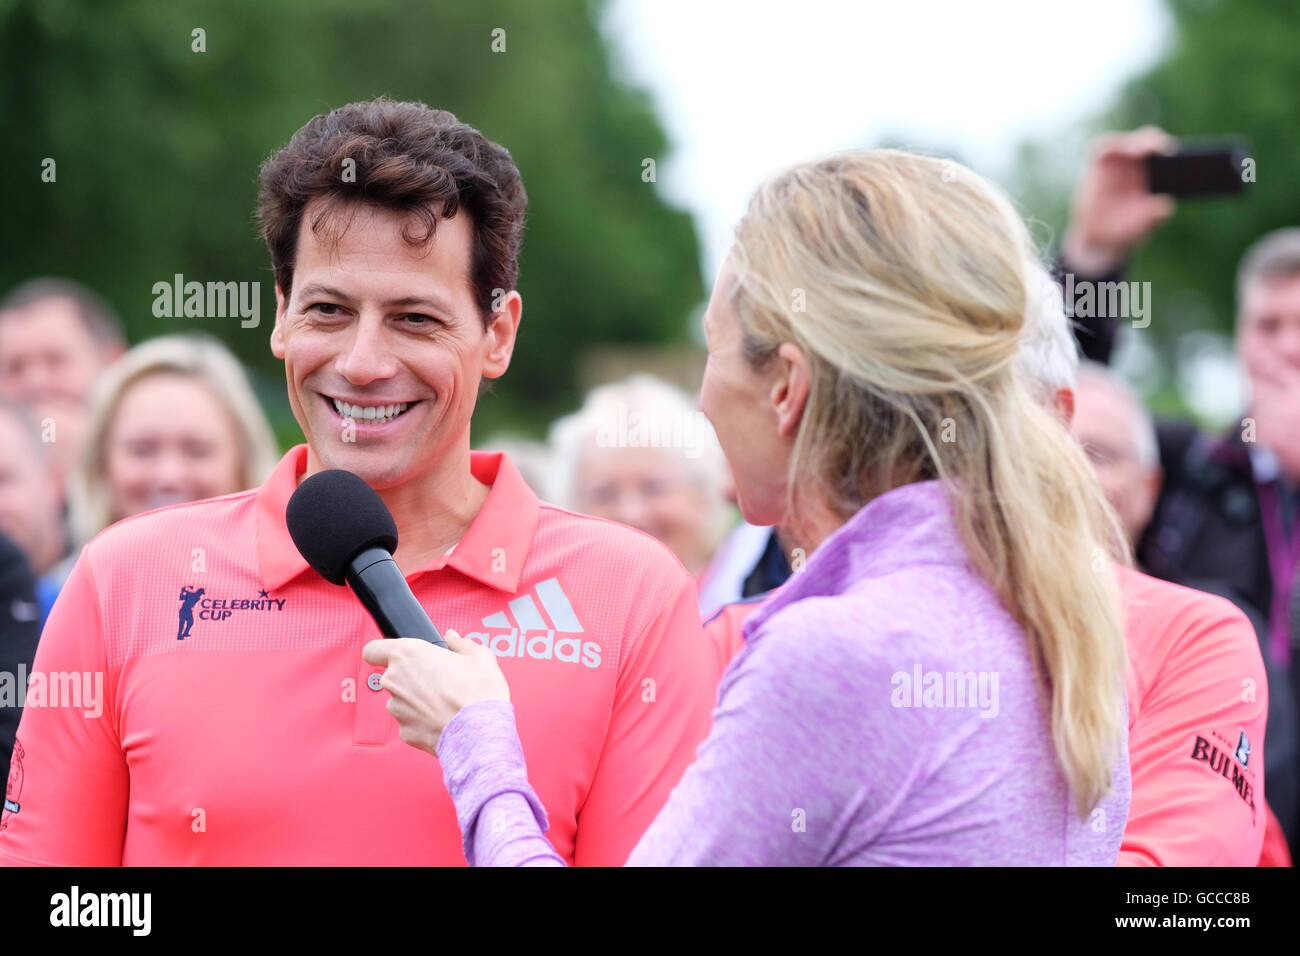 Celtic Manor, Newport, Wales - Saturday 9th July 2016 - The Celebrity Cup golf competition actor Ioan Gruffudd talks - Stock Image